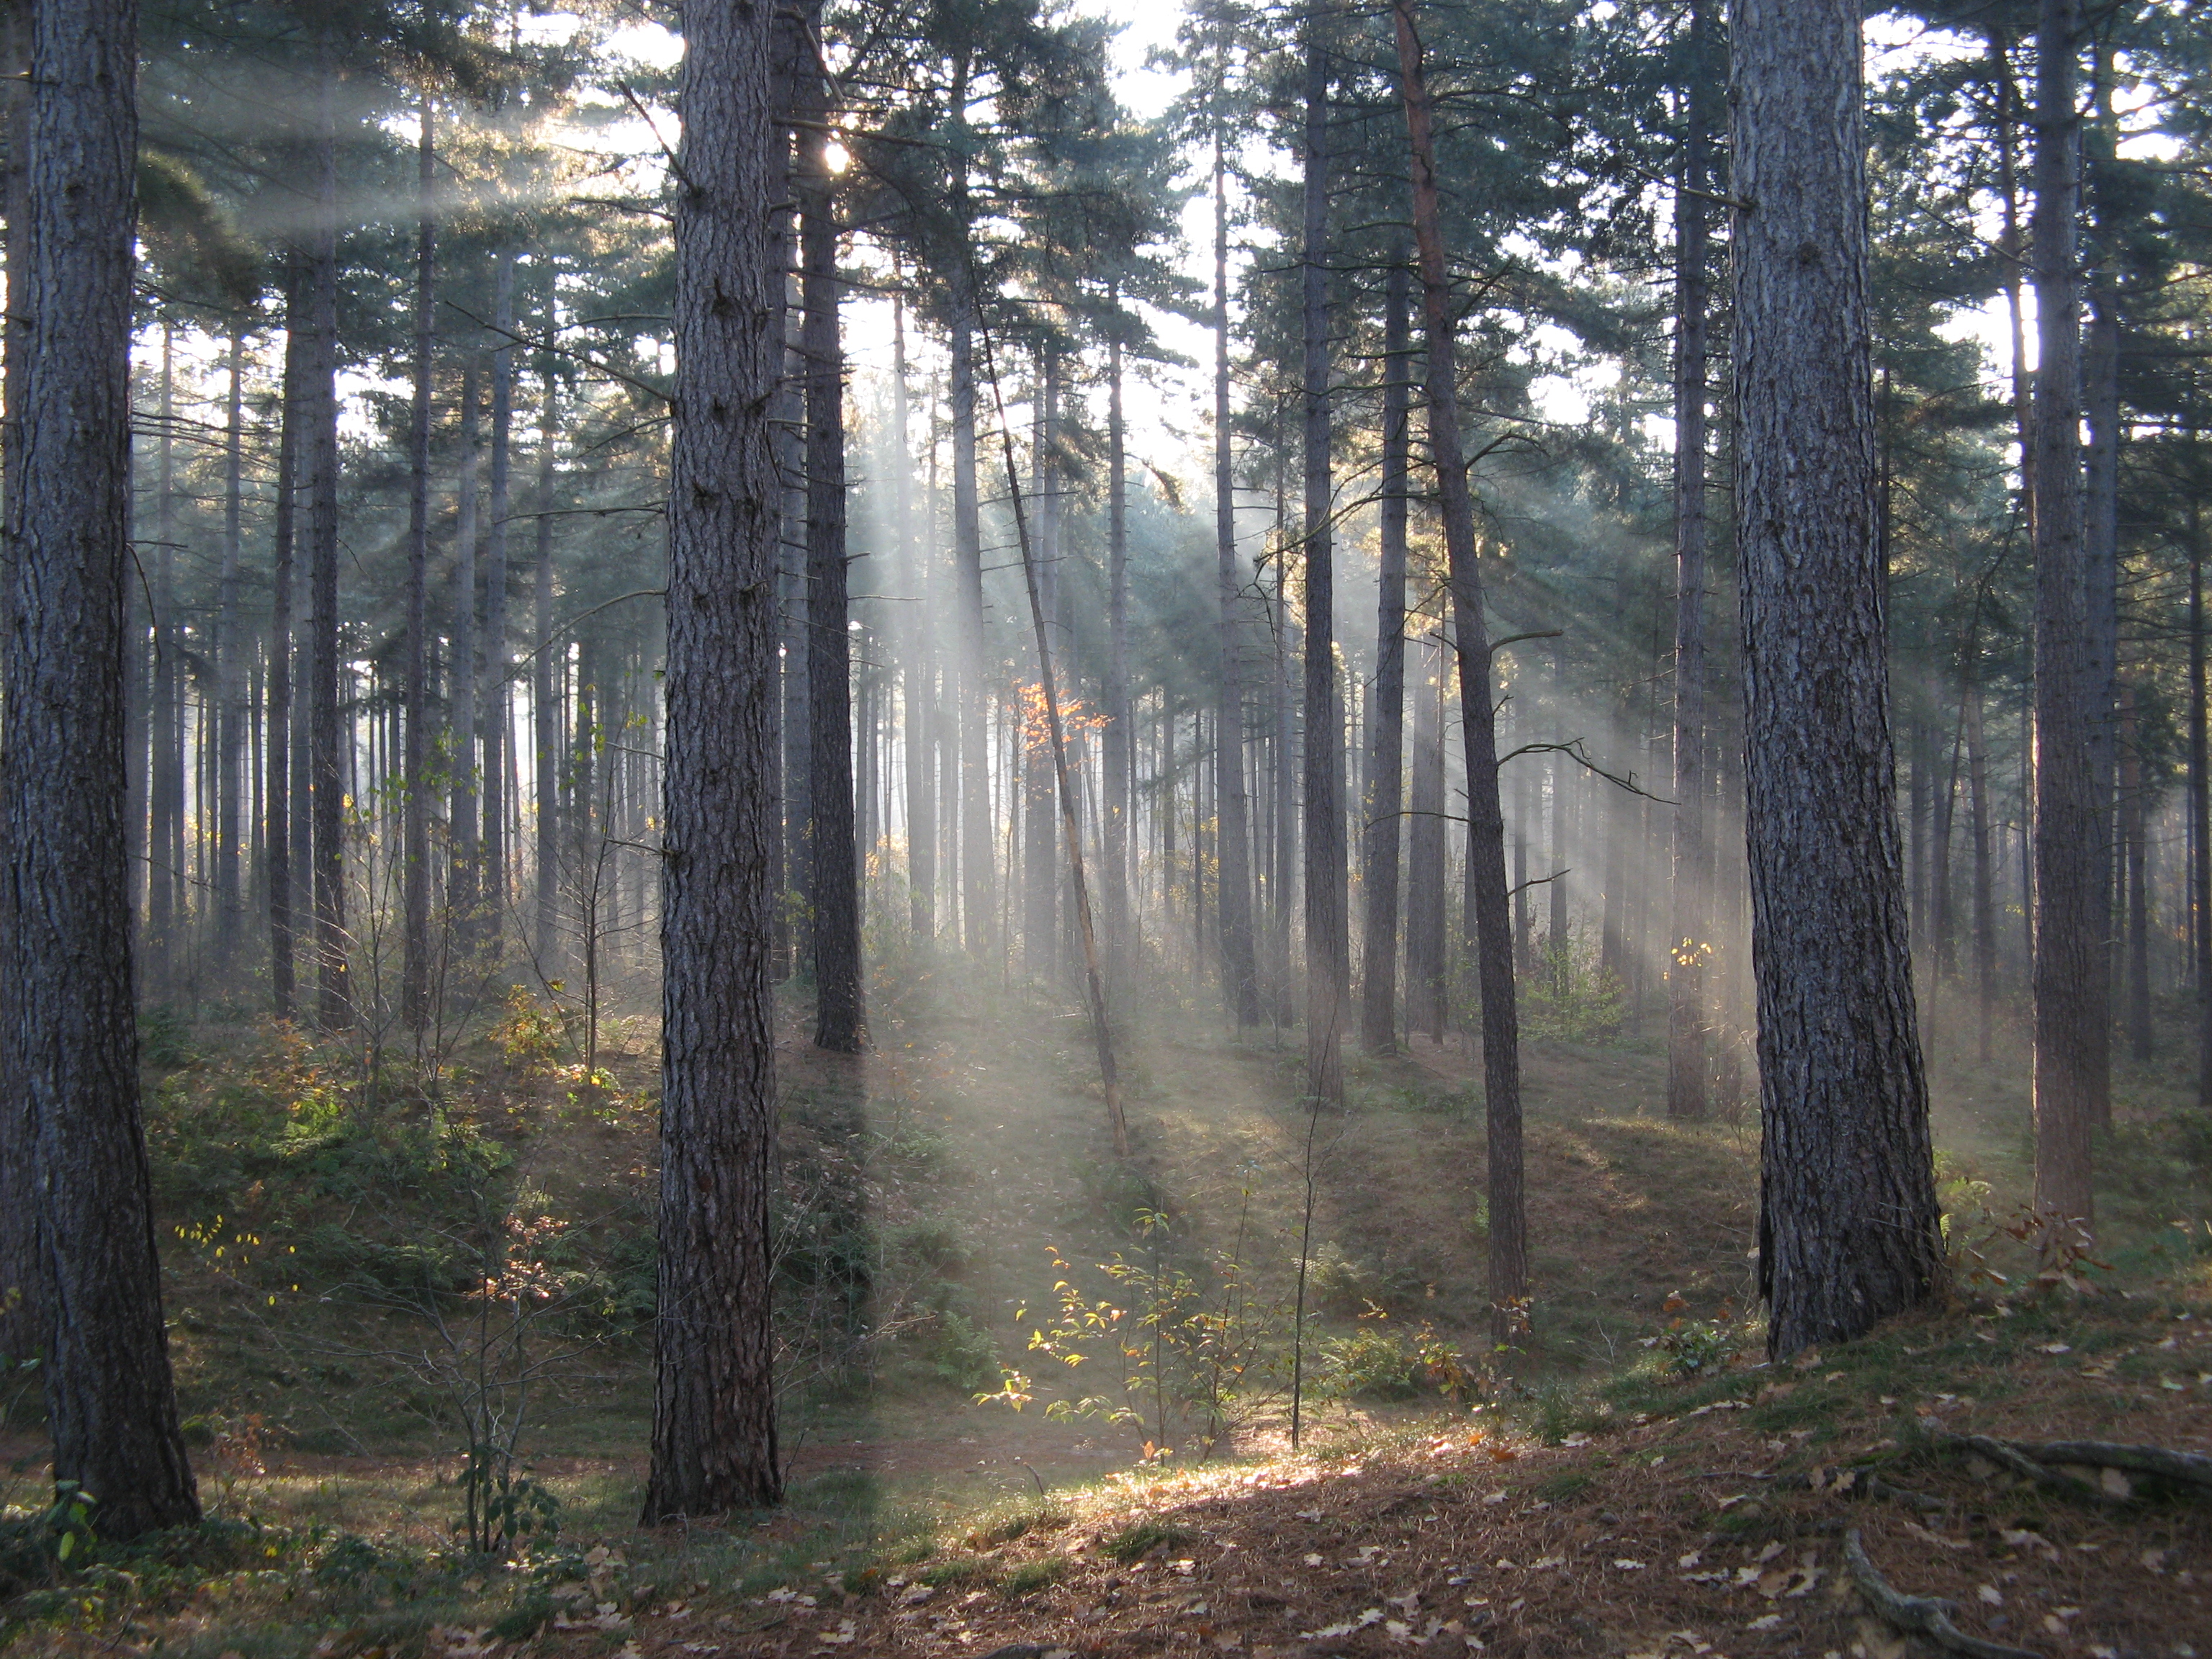 [Image: Crepuscular_rays_in_the_woods_of_Kasterlee,_Belgium.jpg]